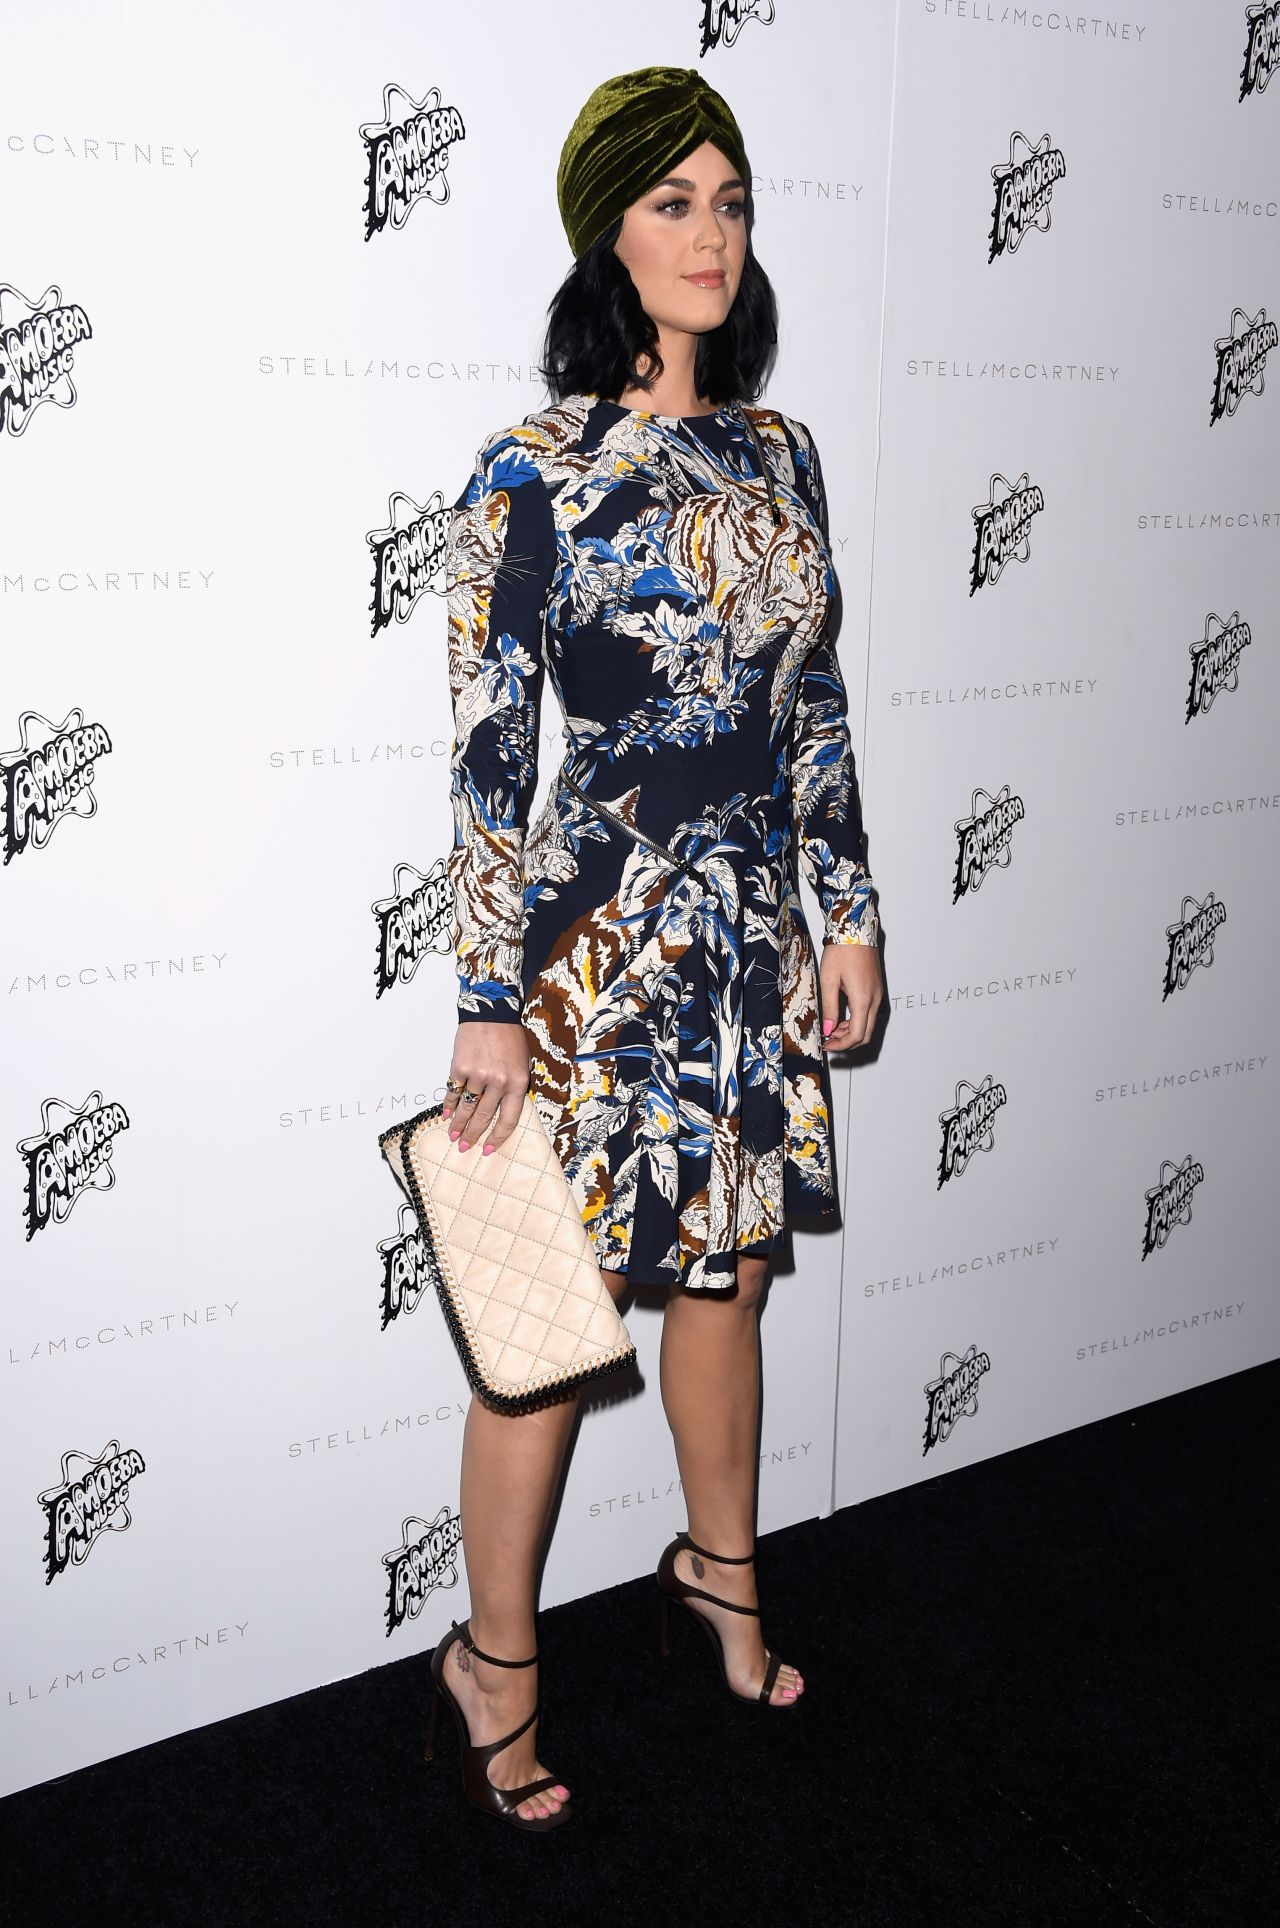 katy-perry-stella-mccartney-autumn-2016-presentation-in-los-angeles-ca-12